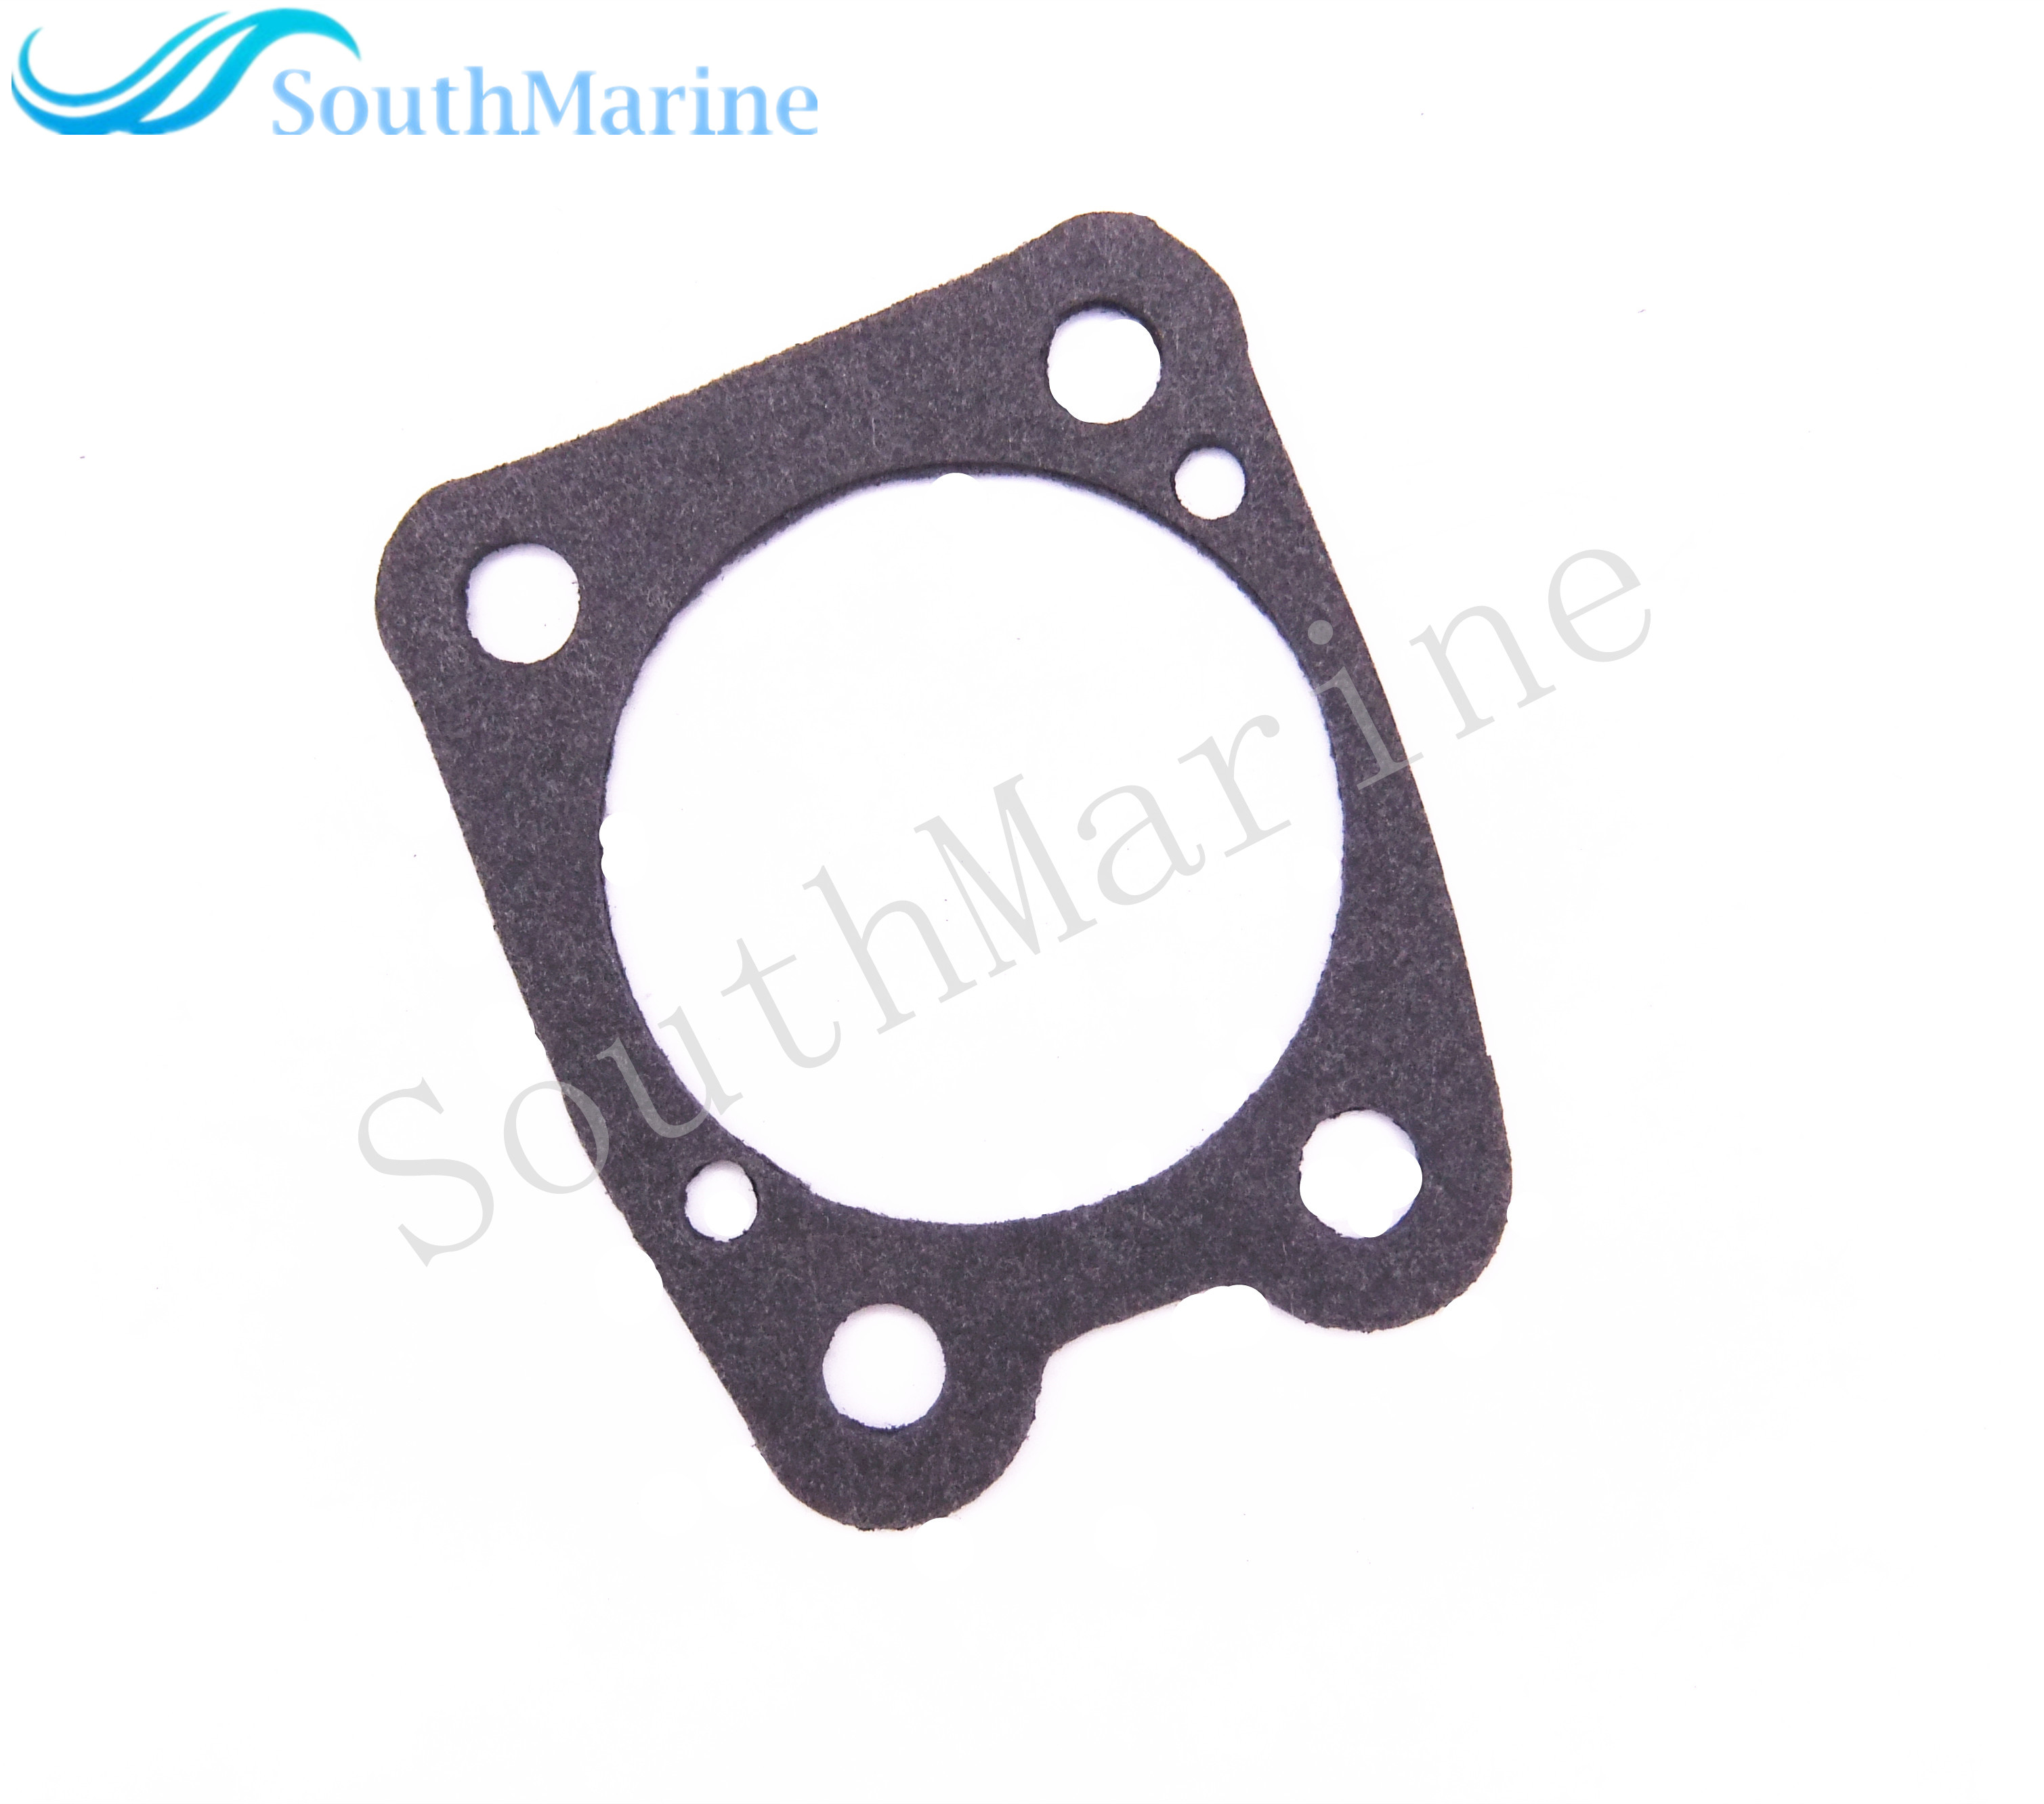 68D-G4315-A0 Water Pump Gasket for Yamaha 4-Stroke F4 Outboard Engines Boat Motors ,Free Shipping